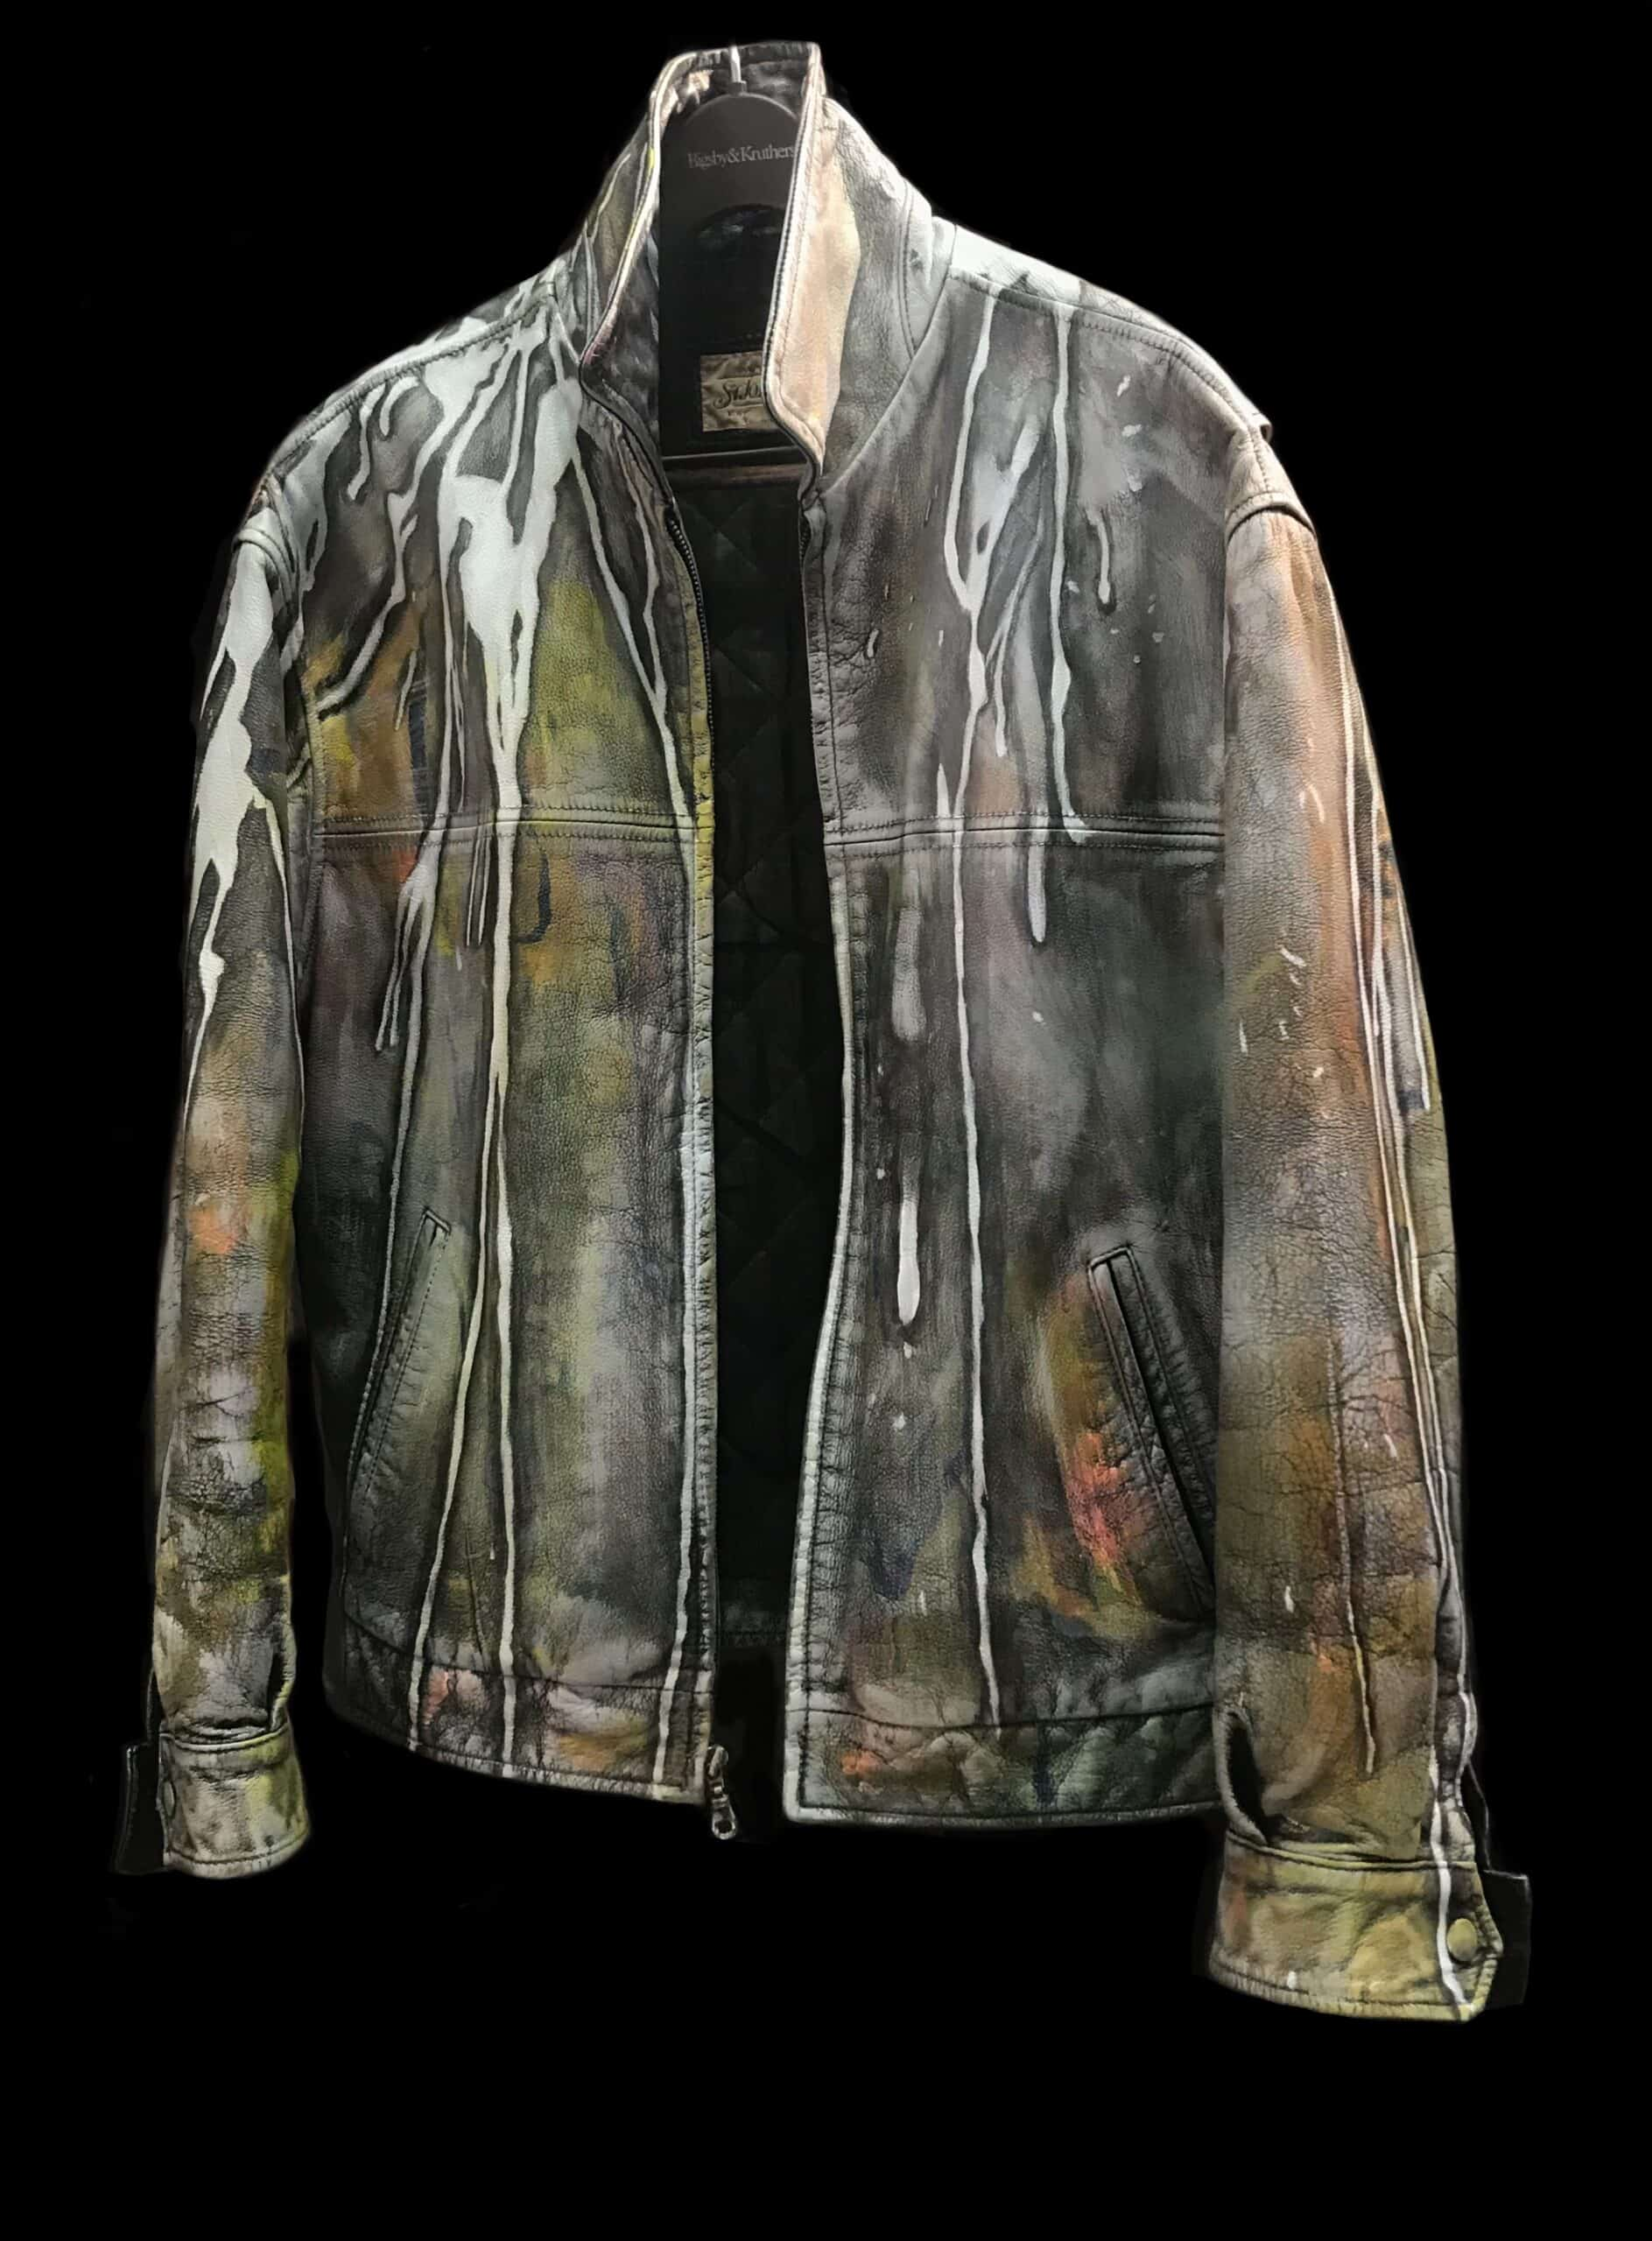 Displayable Wearable Art: Painting on Leather Jackets